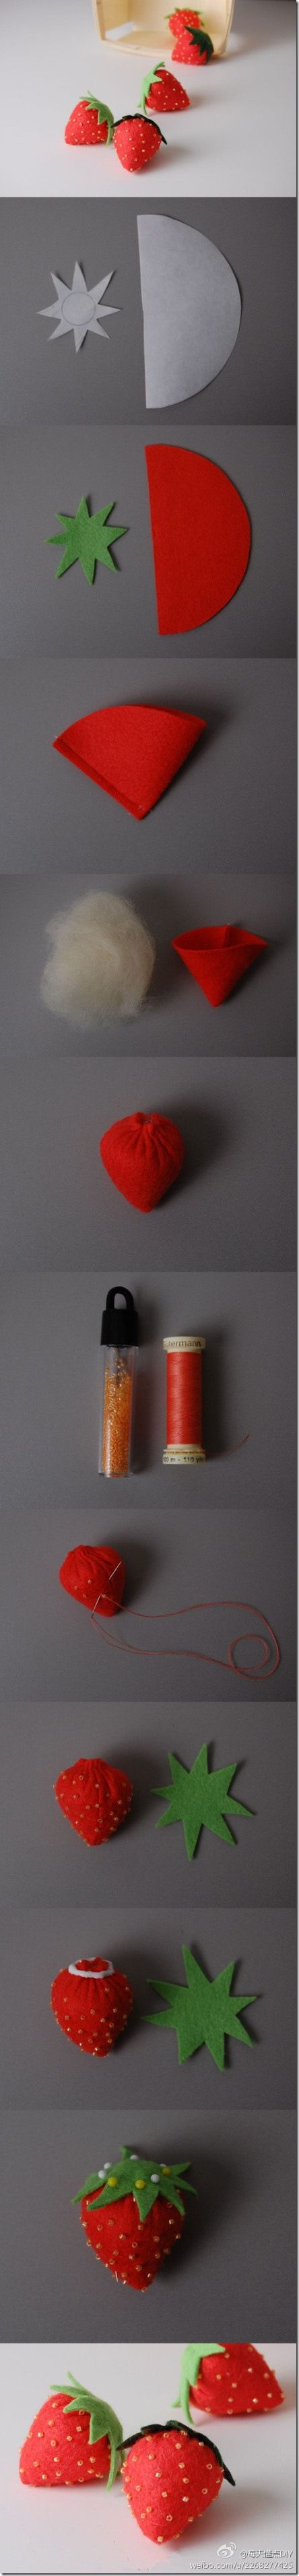 diy cute felt strawberry